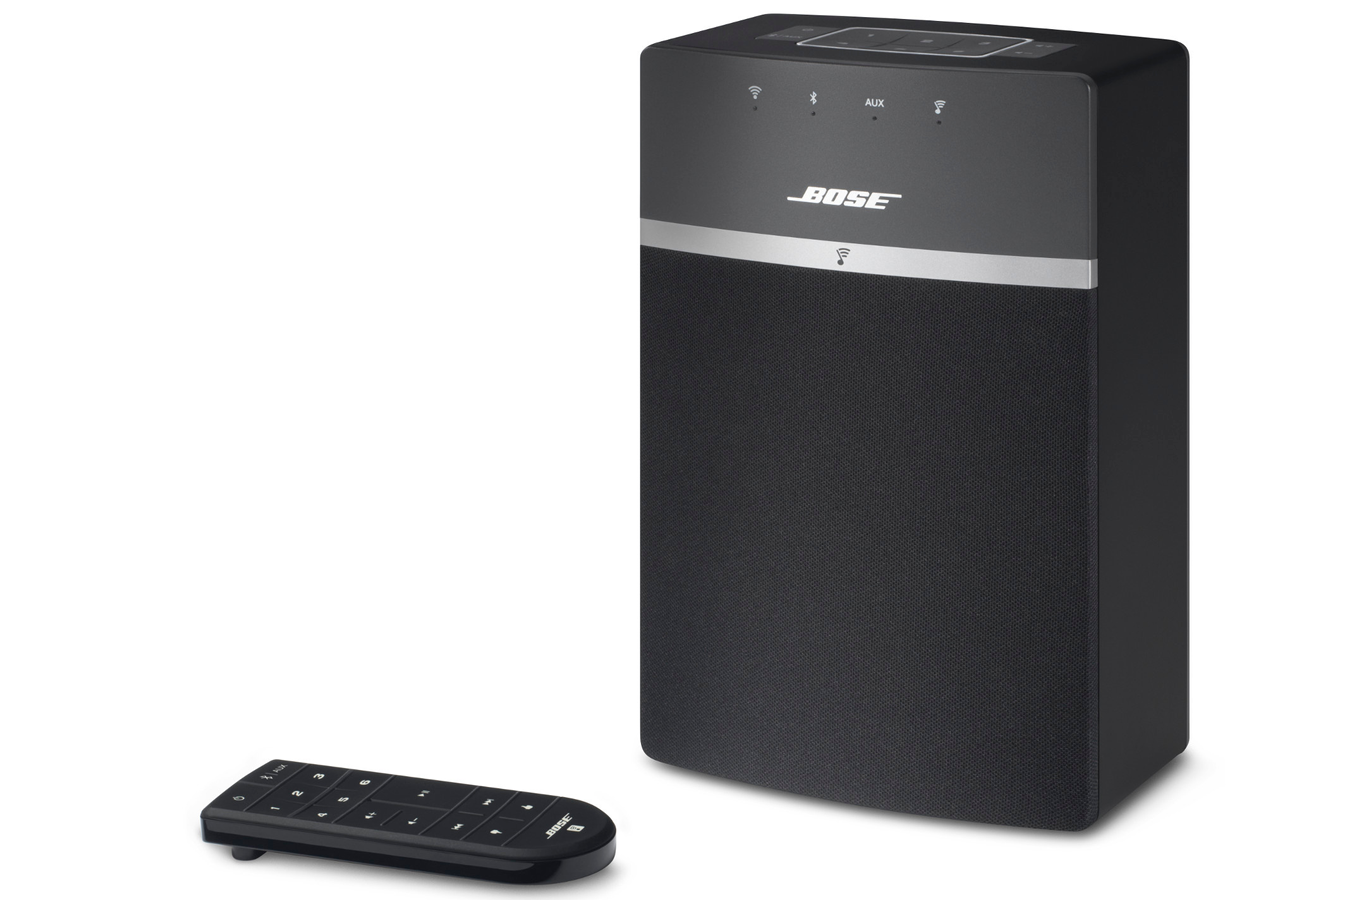 enceinte multiroom bose soundtouch 10 black 4142616 darty. Black Bedroom Furniture Sets. Home Design Ideas